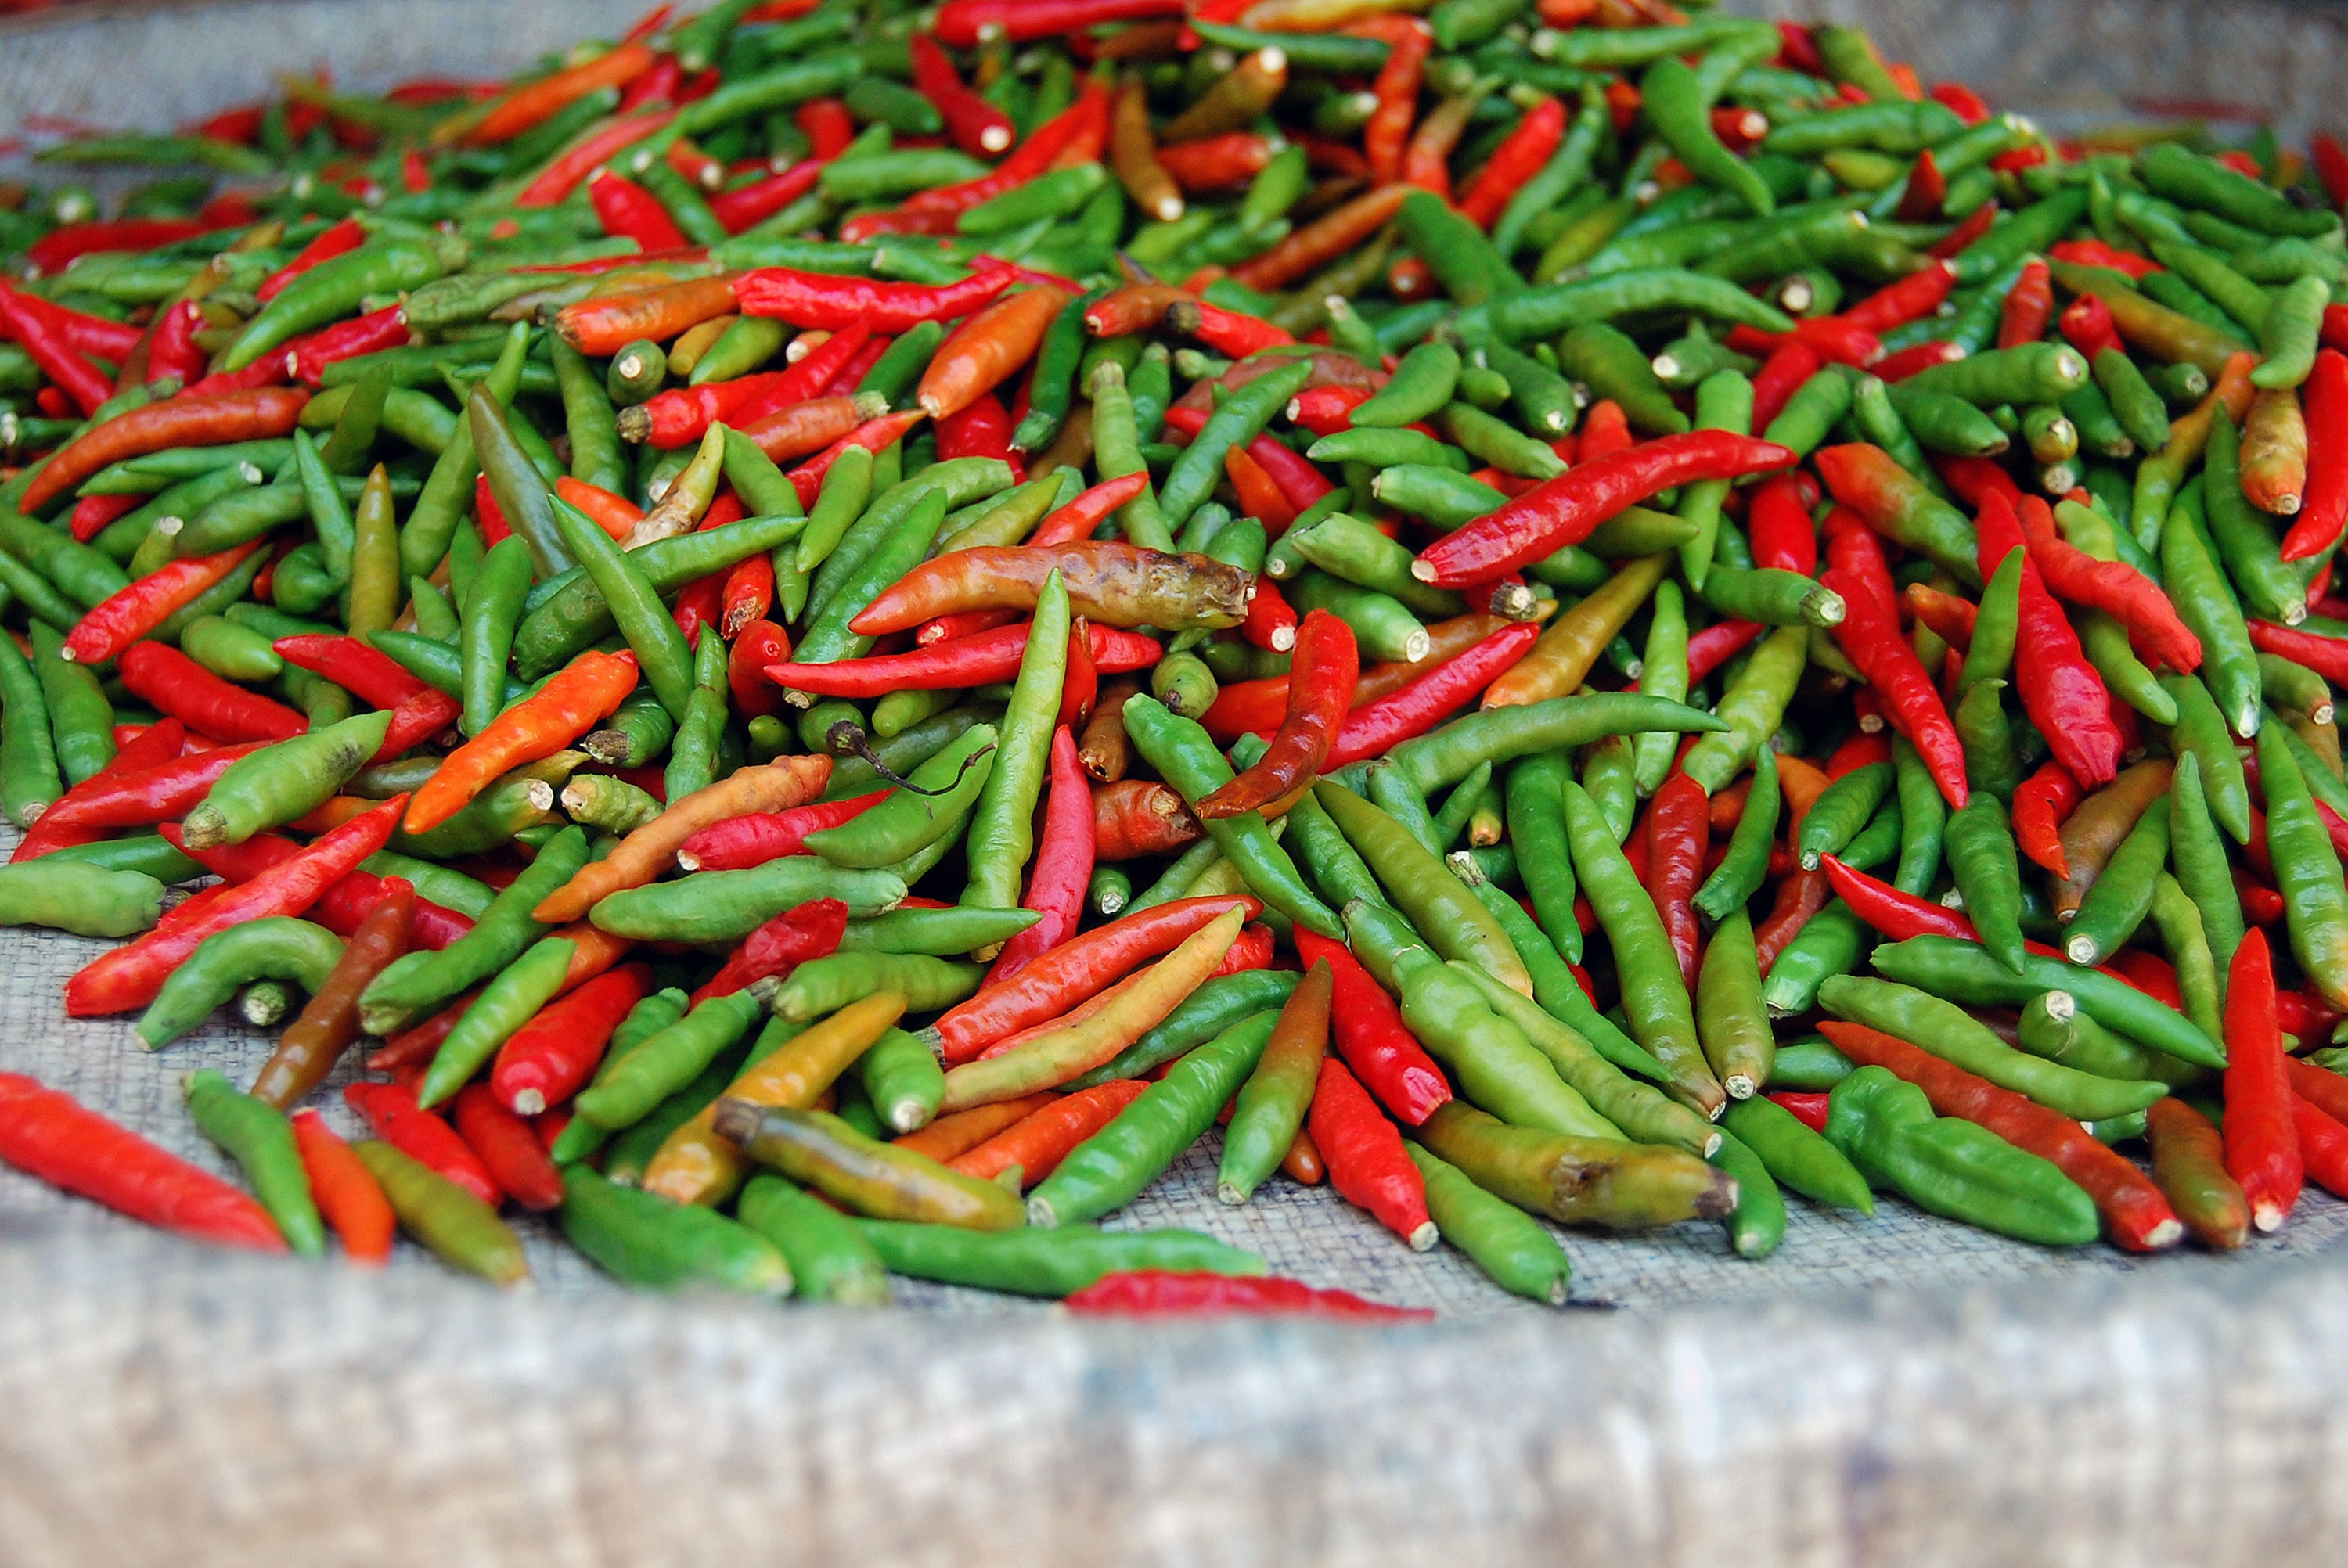 close-up photography of green and red chili